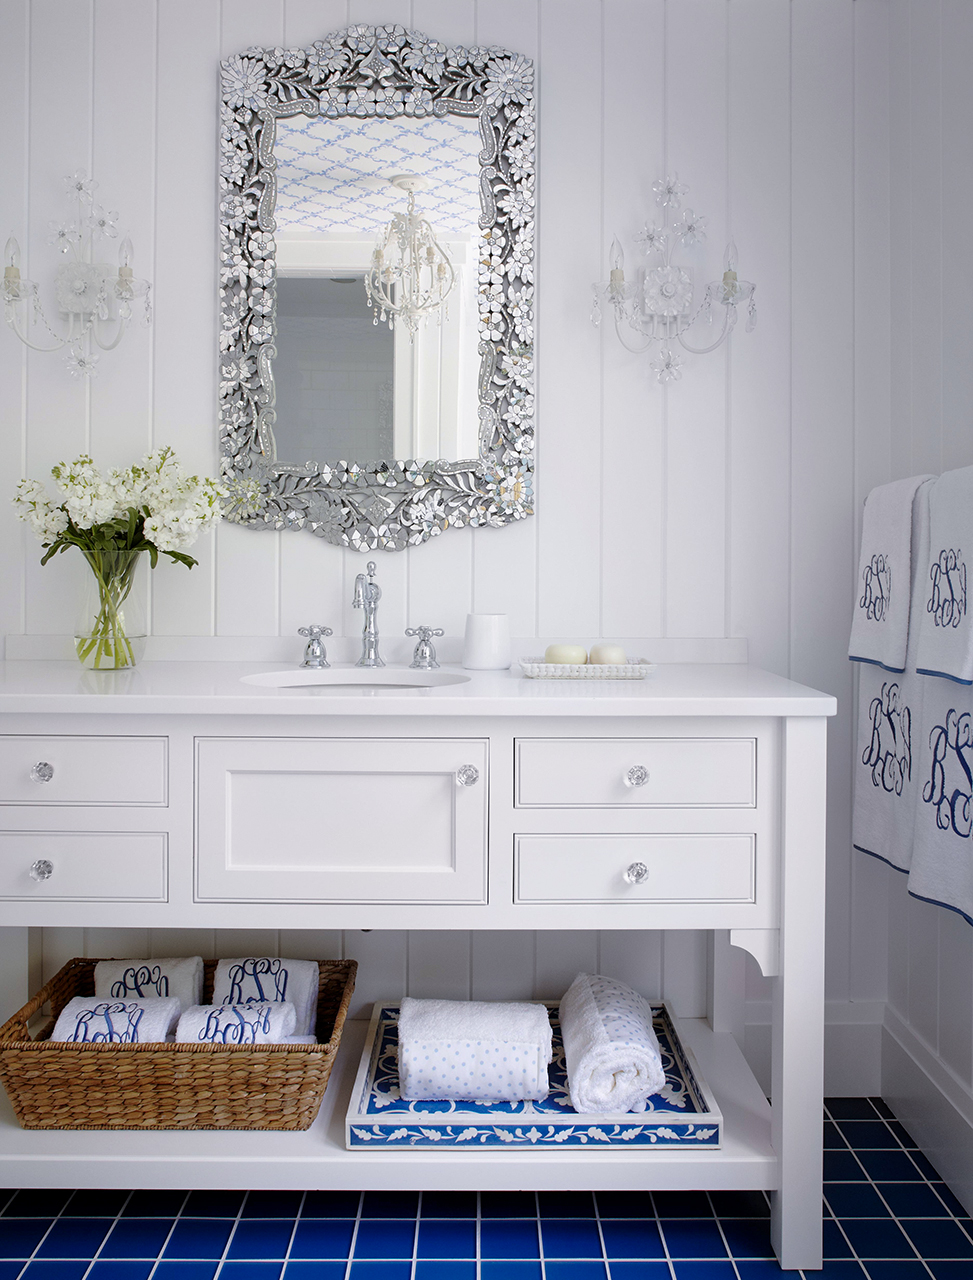 Blue and white bathroom in eclectic style